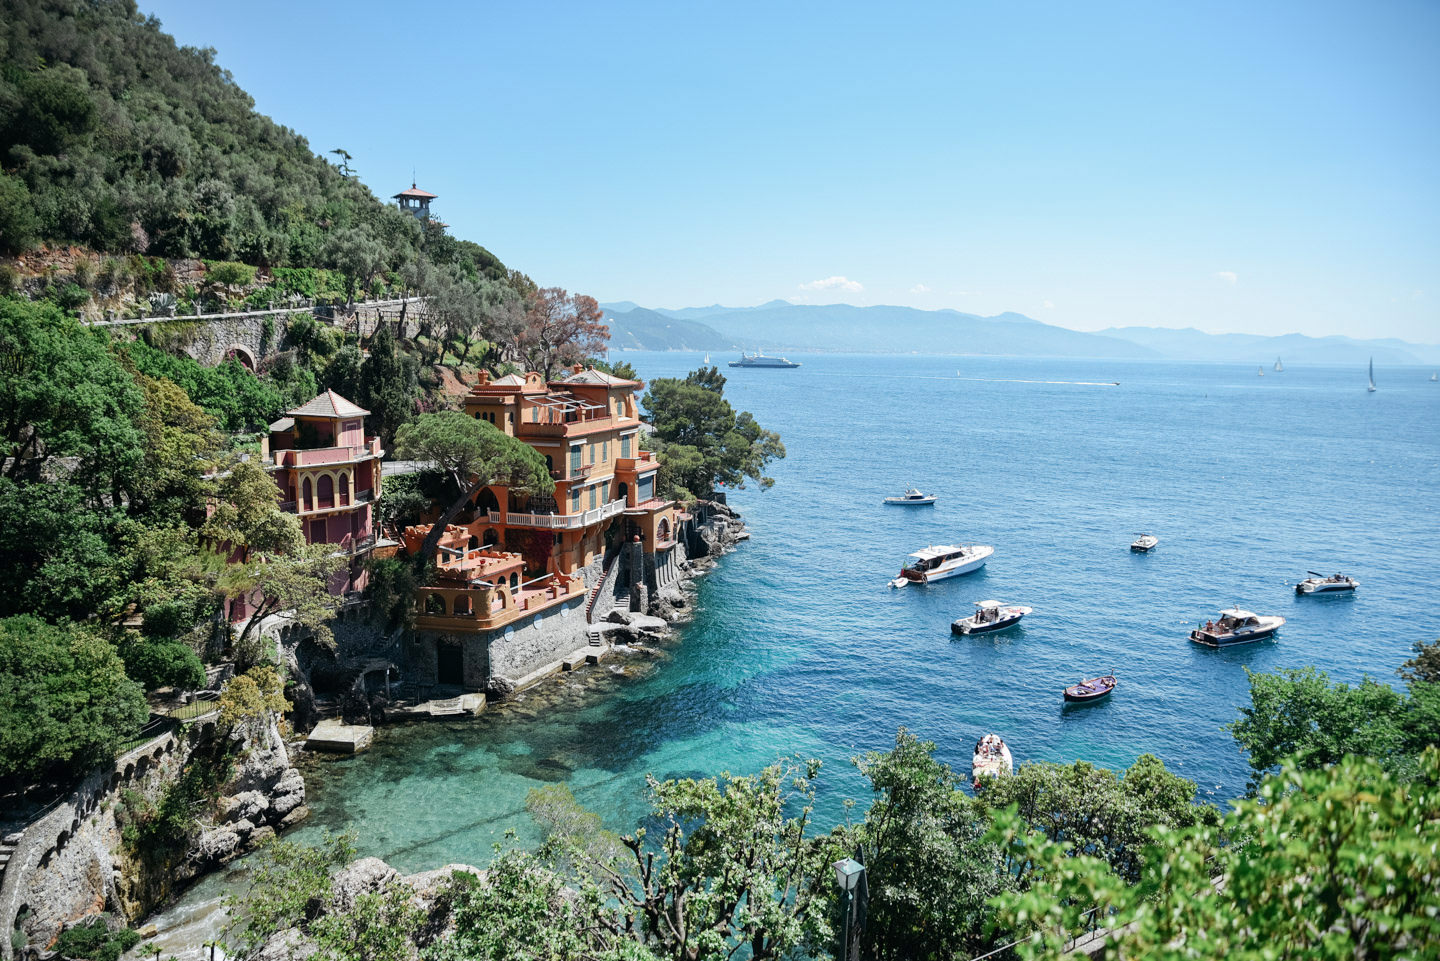 Blog-Mode-And-The-City-Lifestyle-Italie-Portofino-Belmond-Hotel-4